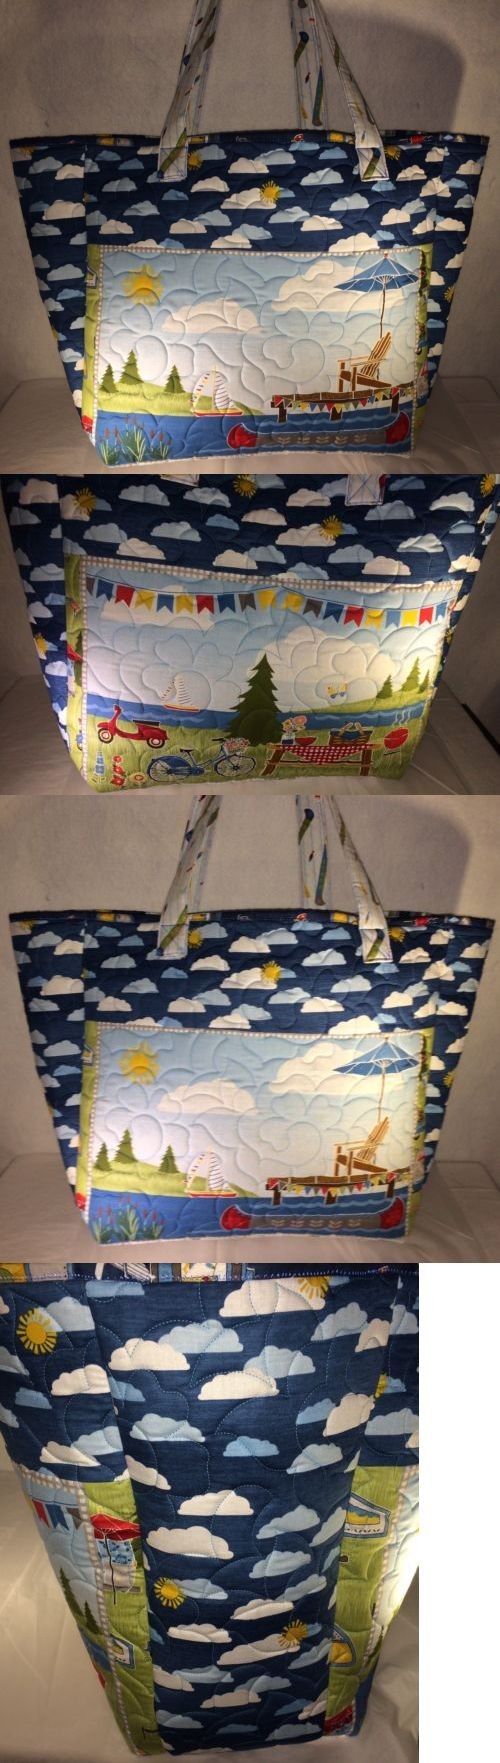 aeaa9d8a1 Other Handcrafted Pieces 57738: Larger Quilted Tote Market Bag Handmade Let  S Go Glamping Wilmington Fabric -> BUY IT NOW ONLY: $70.39 on #eBay #other  ...